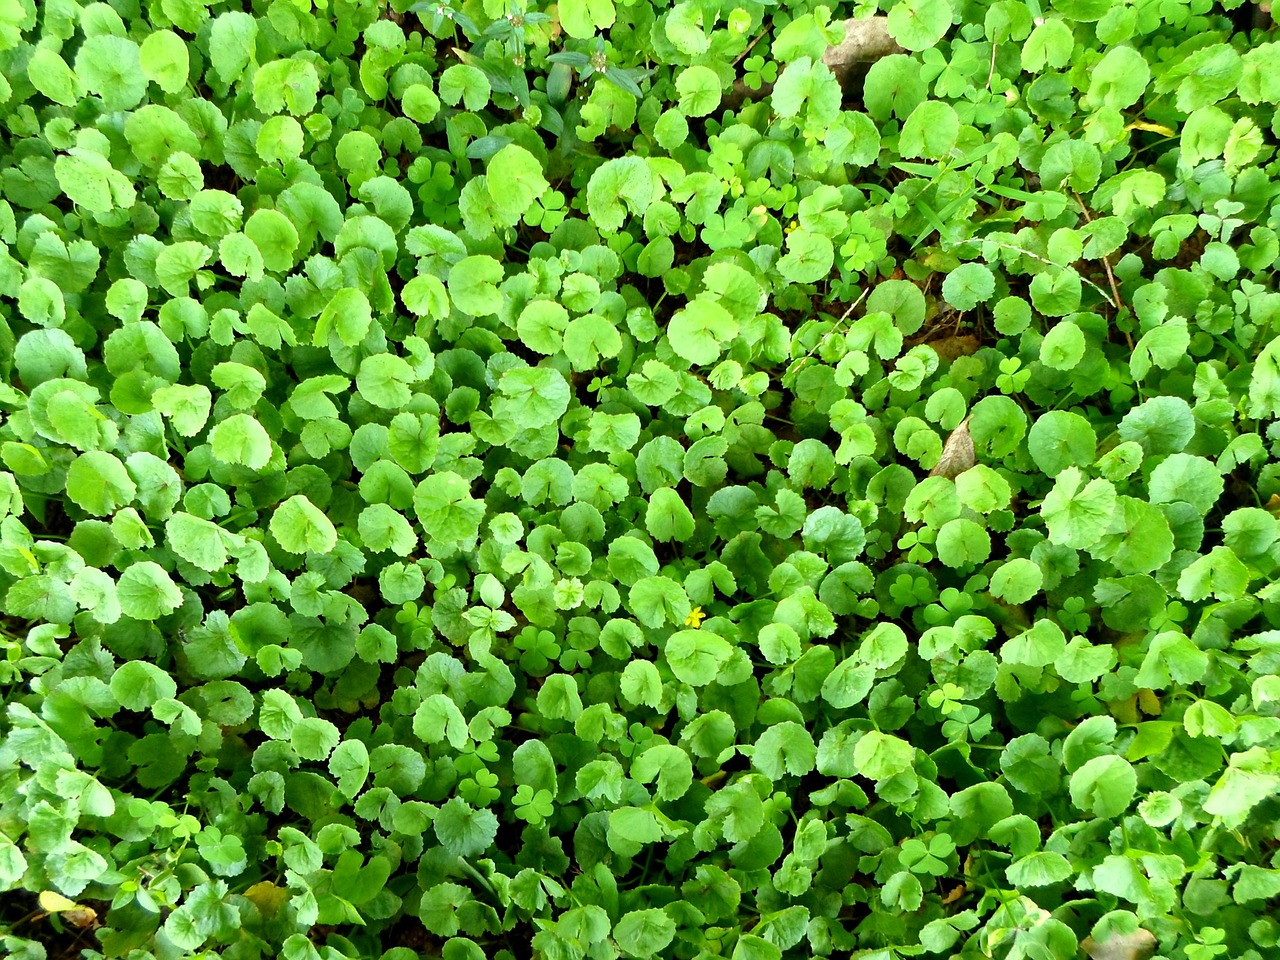 centella,asiatic pennywort,indian pennywort,herbs,herbal,plants,leaves,greenery,leafy,greens,edible,healthy,medicine,natural,nature,flora,tiny,small,bright,colorful,free pictures, free photos, free images, royalty free, free illustrations, public domain